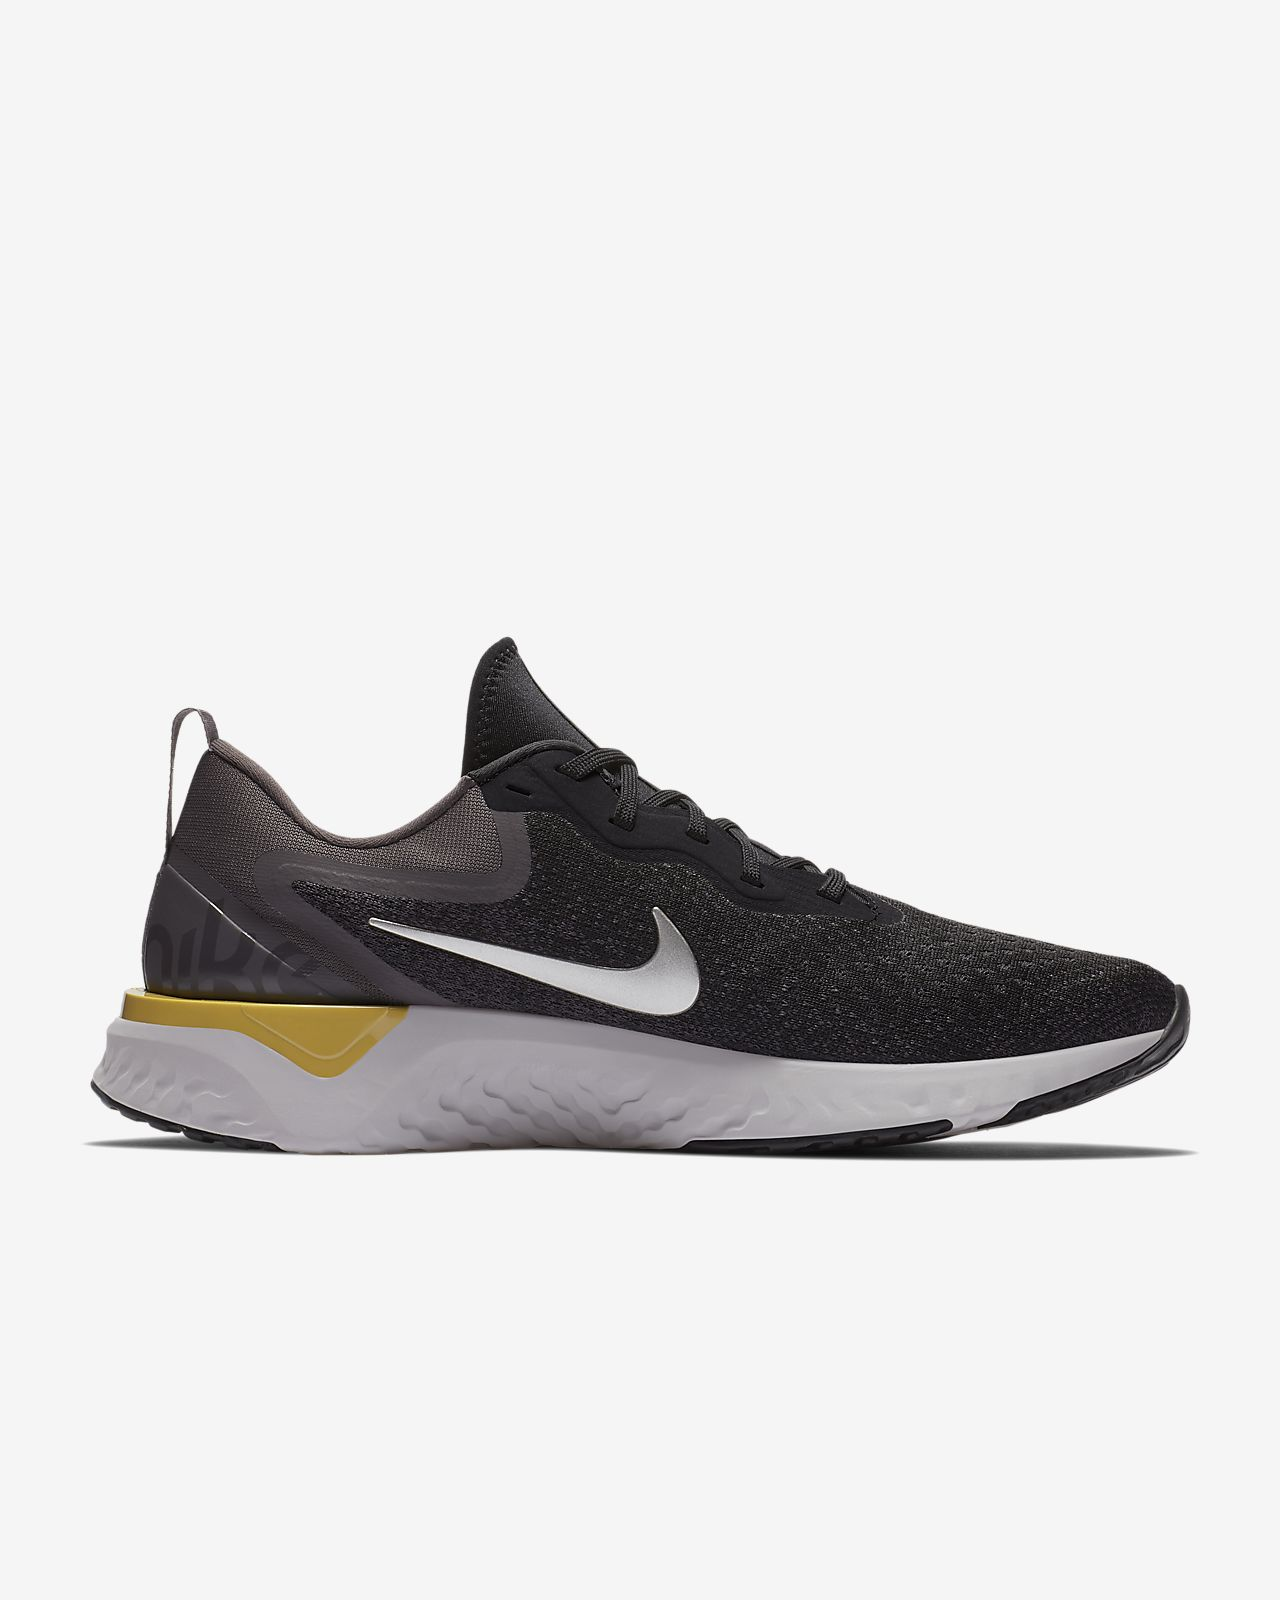 353a1fc357 Nike Odyssey React Men's Running Shoe. Nike.com AT